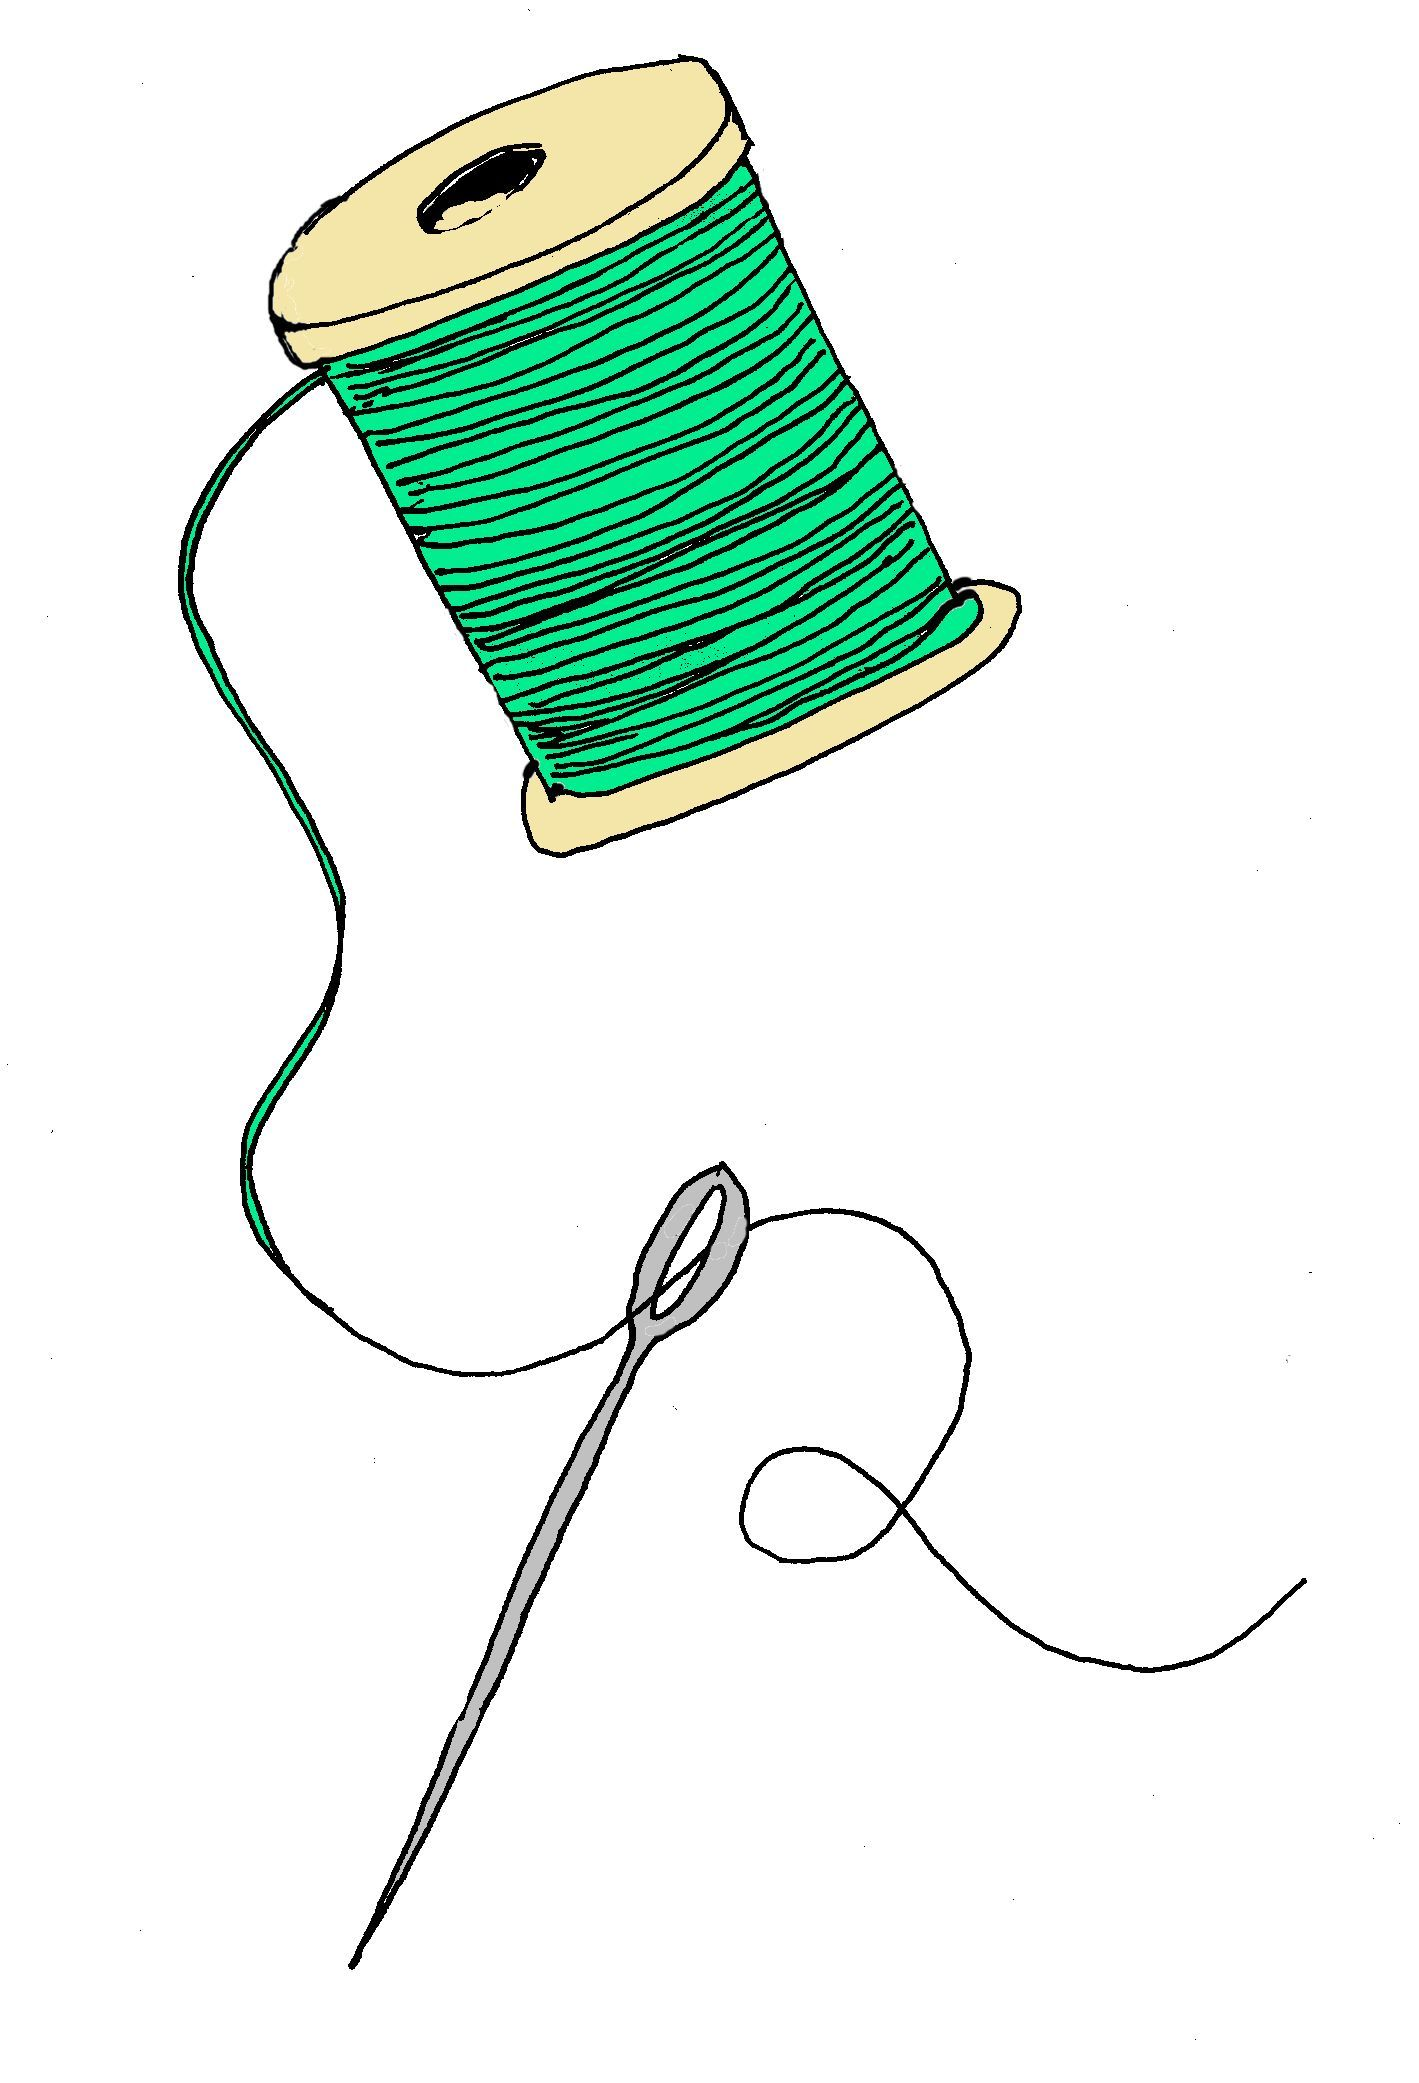 Free Sewing Cliparts, Download Free Clip Art, Free Clip Art.